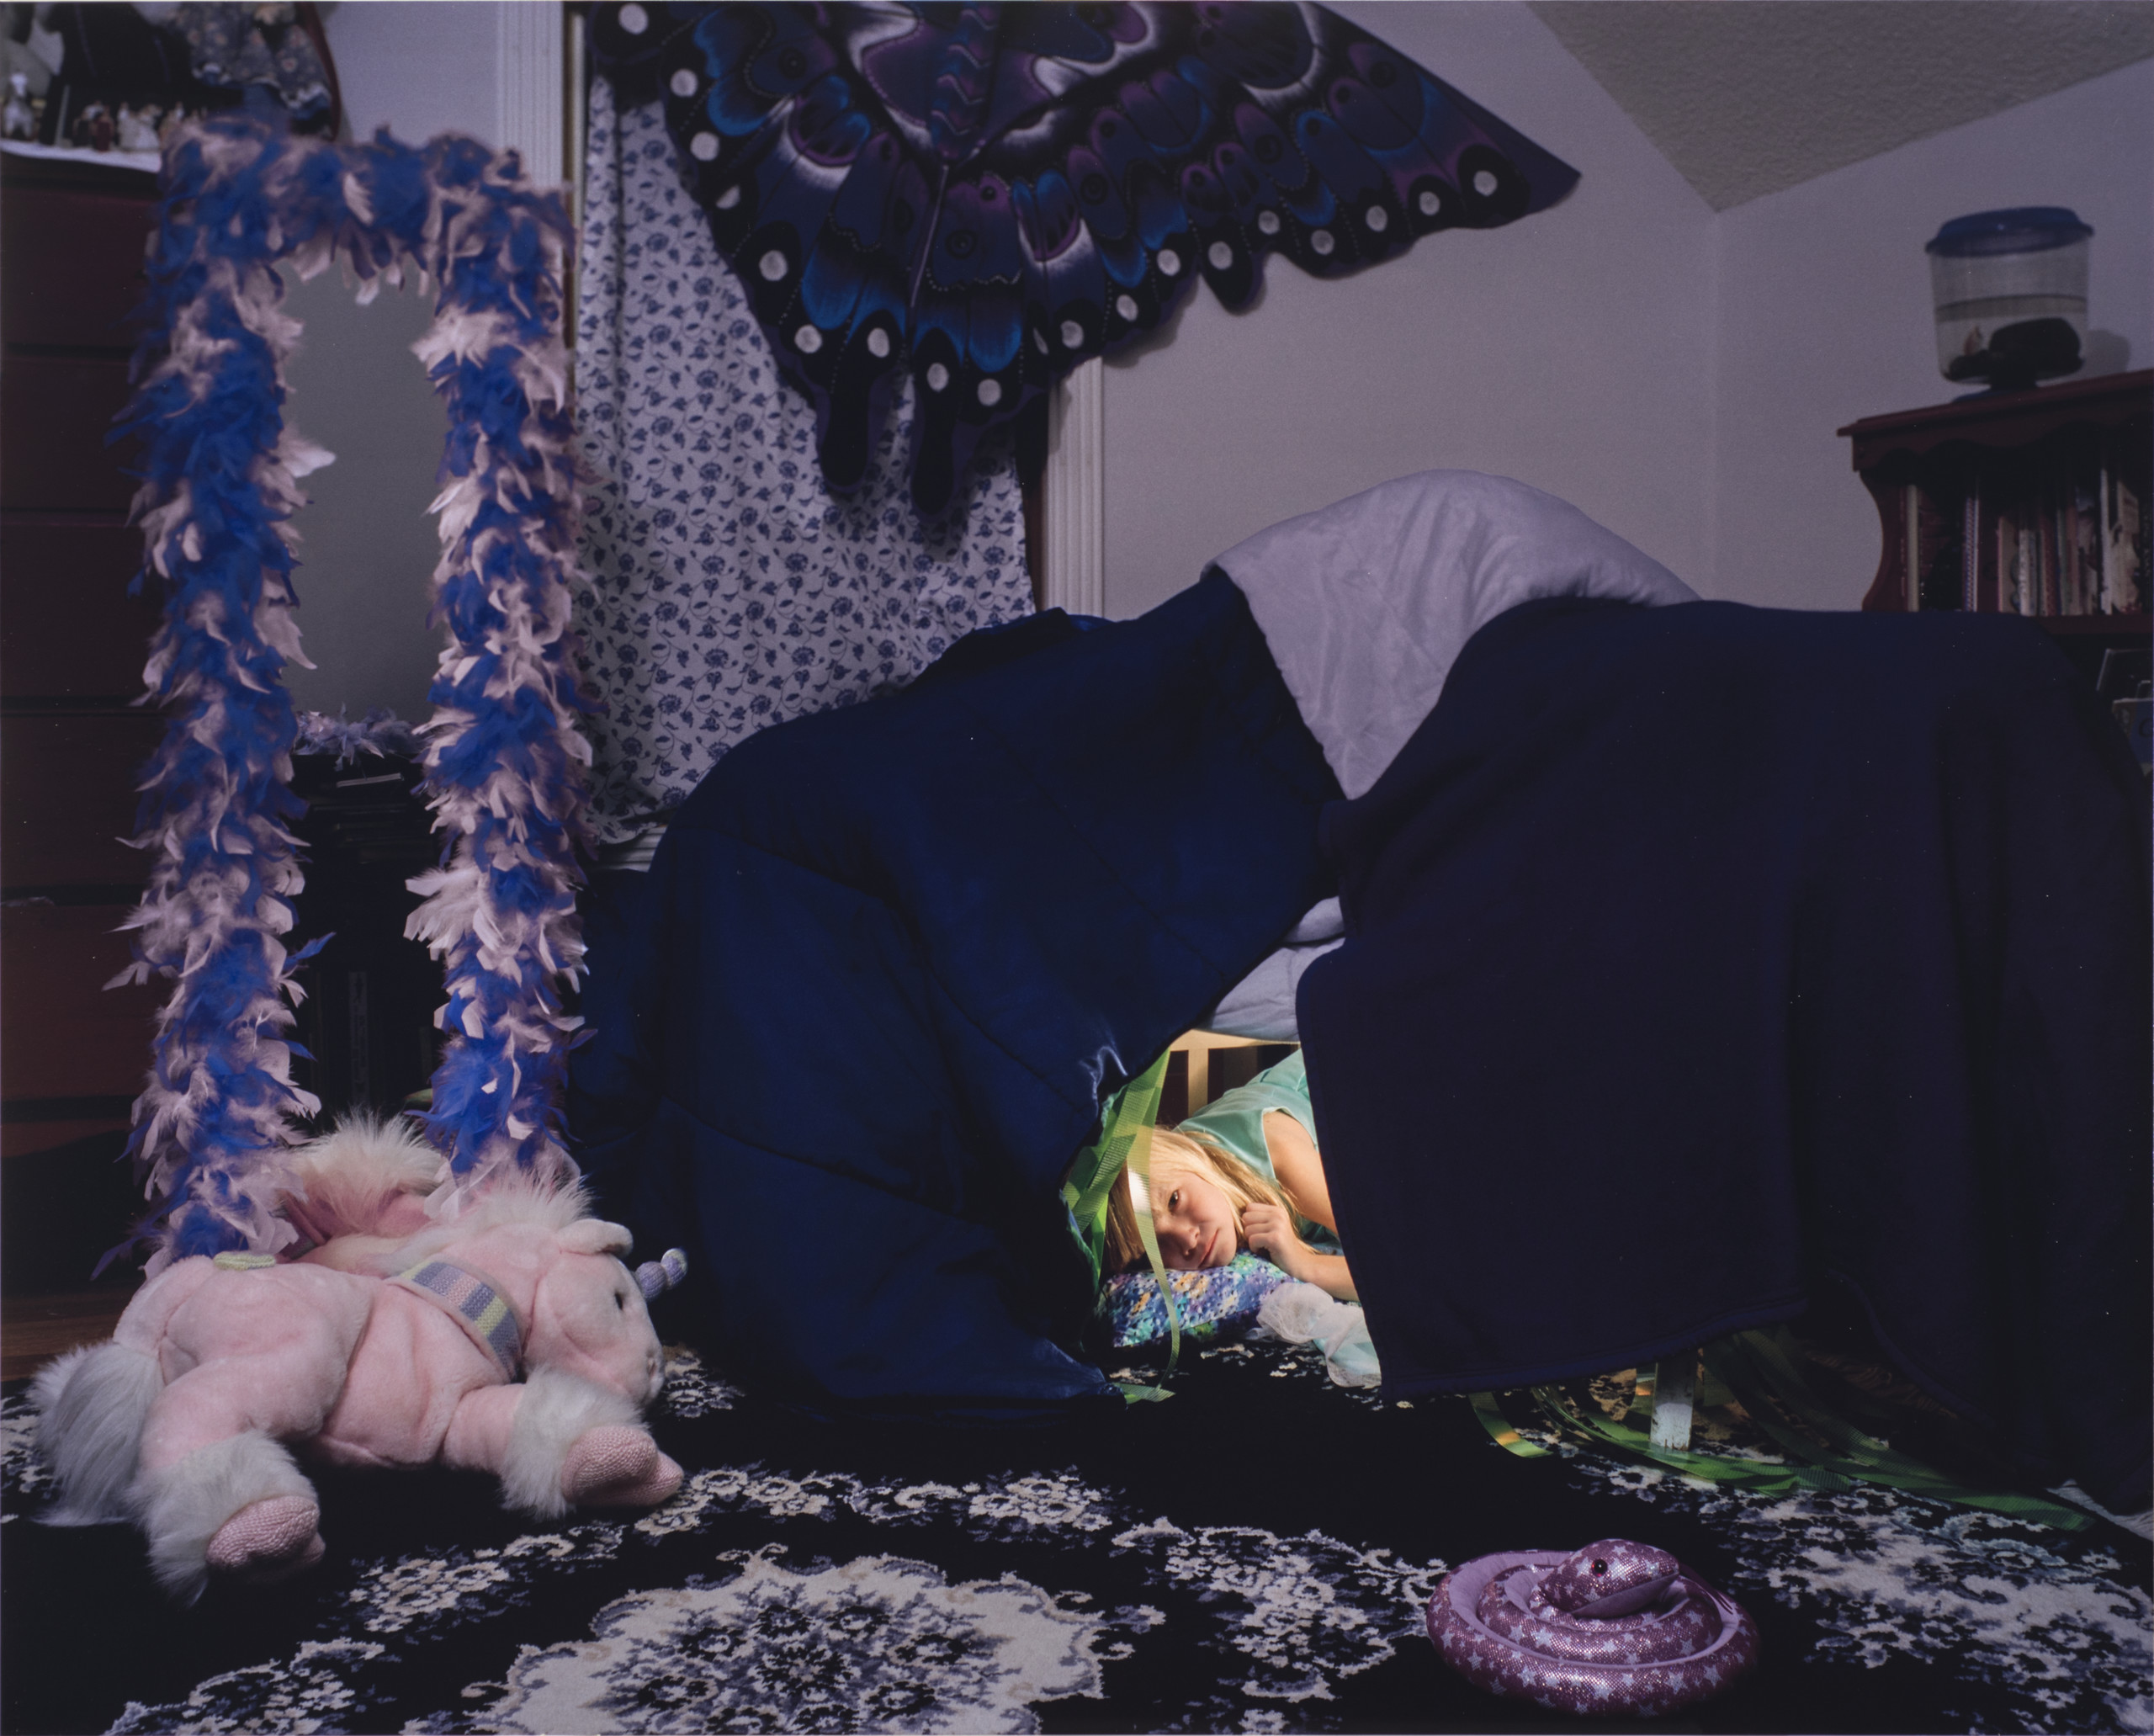 A color photograph of a young light skinned girl with light blonde hair. The girl peeks out from a fort made from a dark blue and purple comforter. A light pink and purple stuffed unicorn sits on a purple and white floral rug in front of the fort. A purple, blue, white, and black paper butterfly-shaped kite hangs on the wall above the fort.